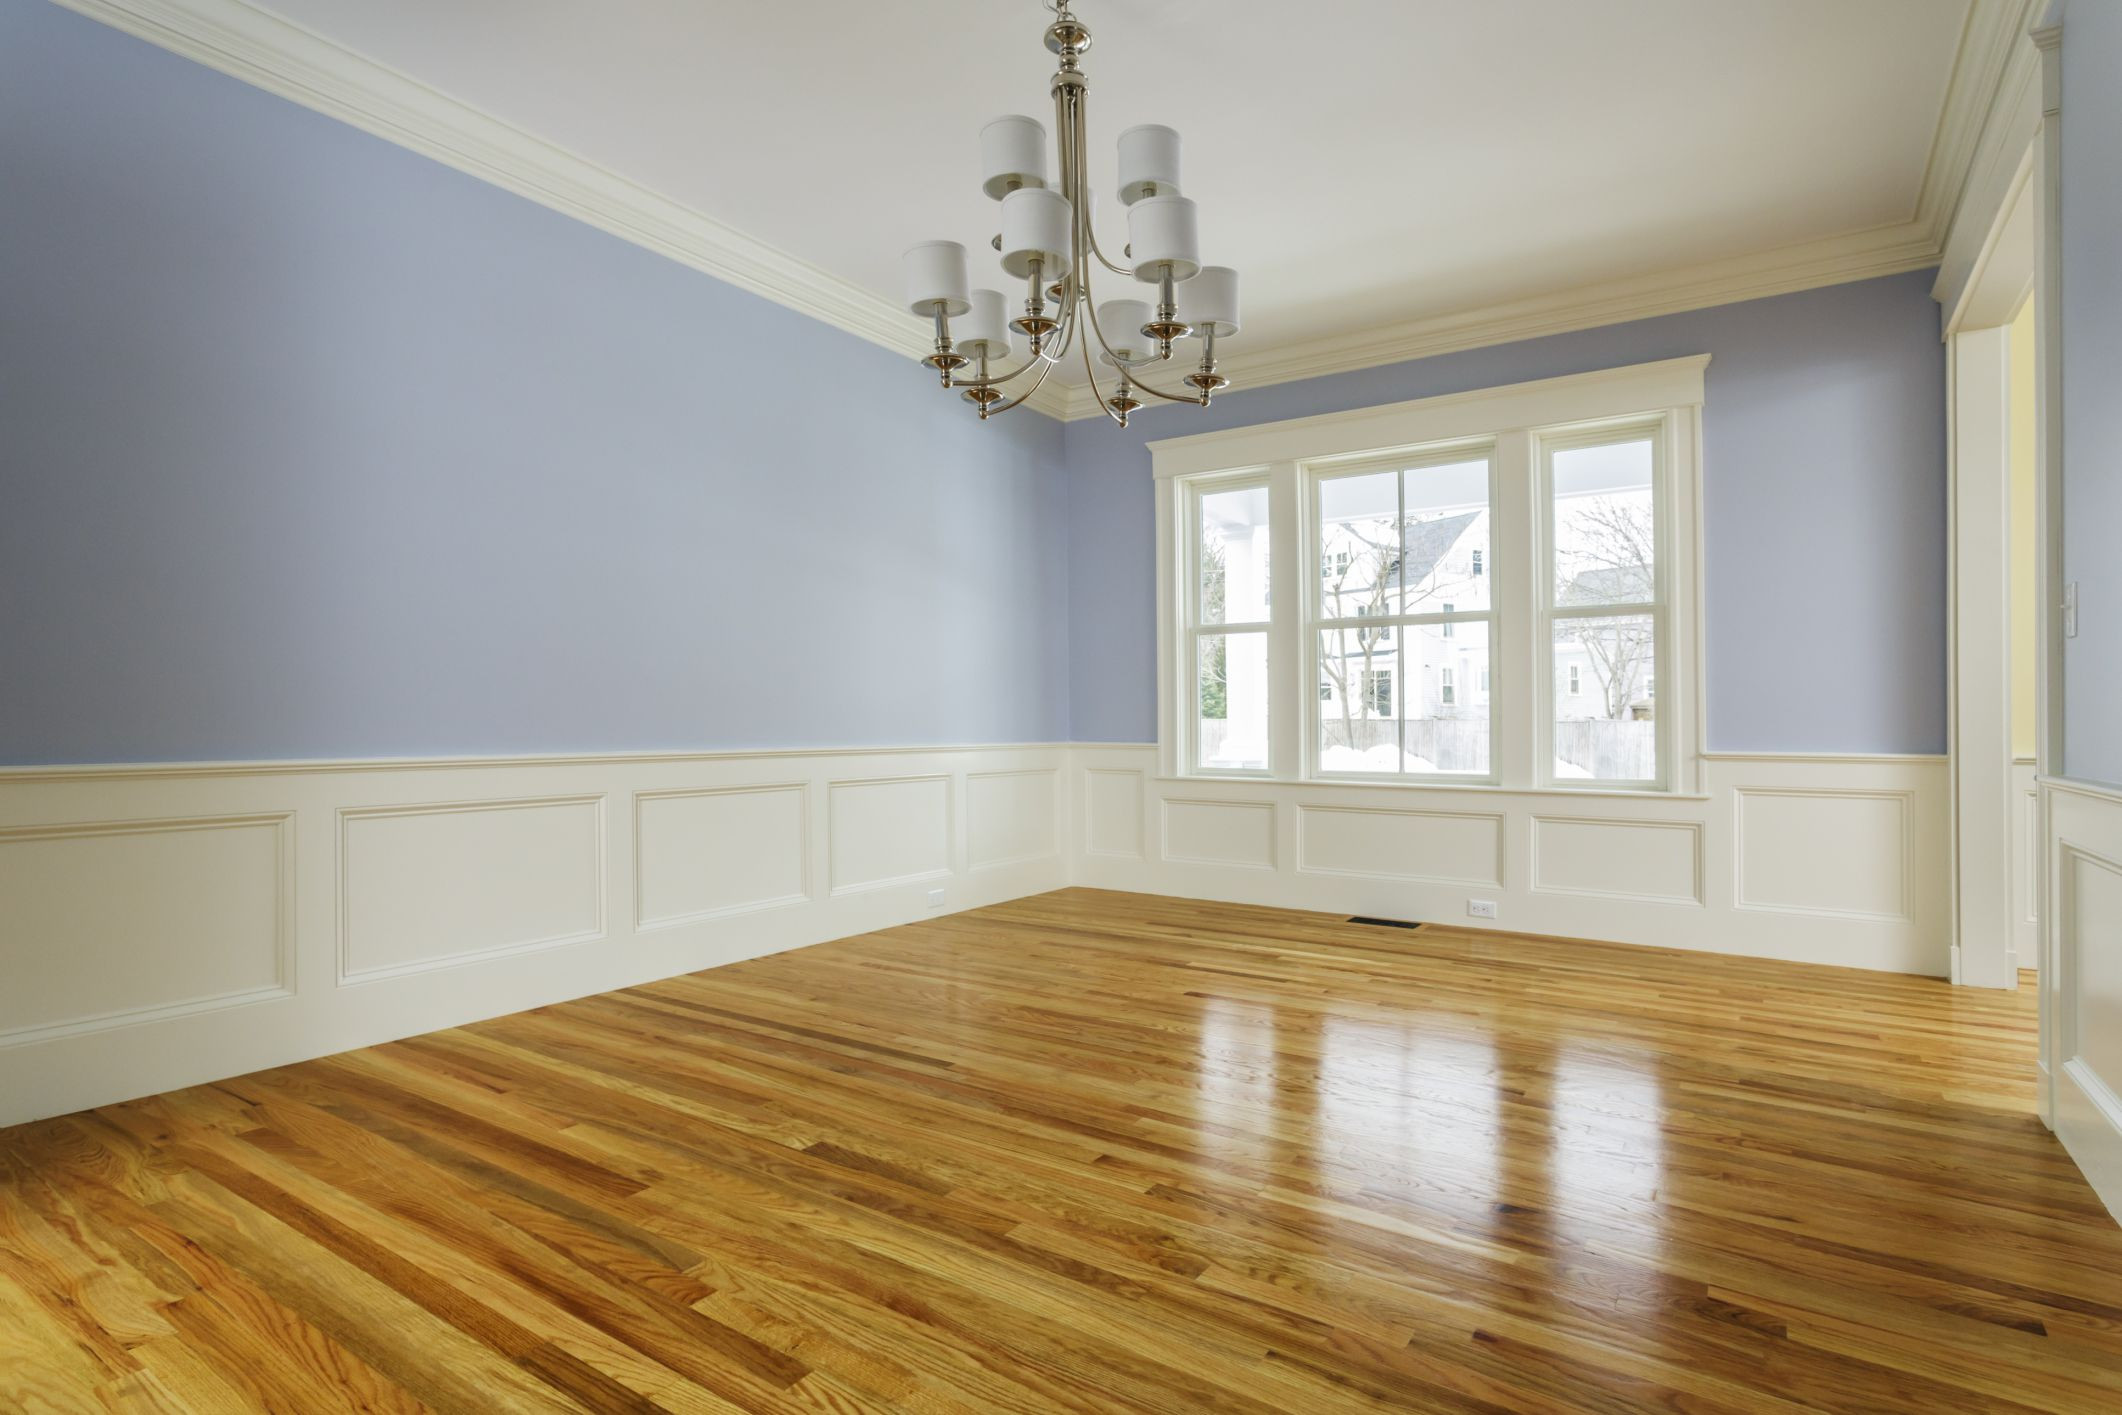 Hardwood Flooring Companies Atlanta Ga Of The Cost To Refinish Floors Intended For 168686572 Highres